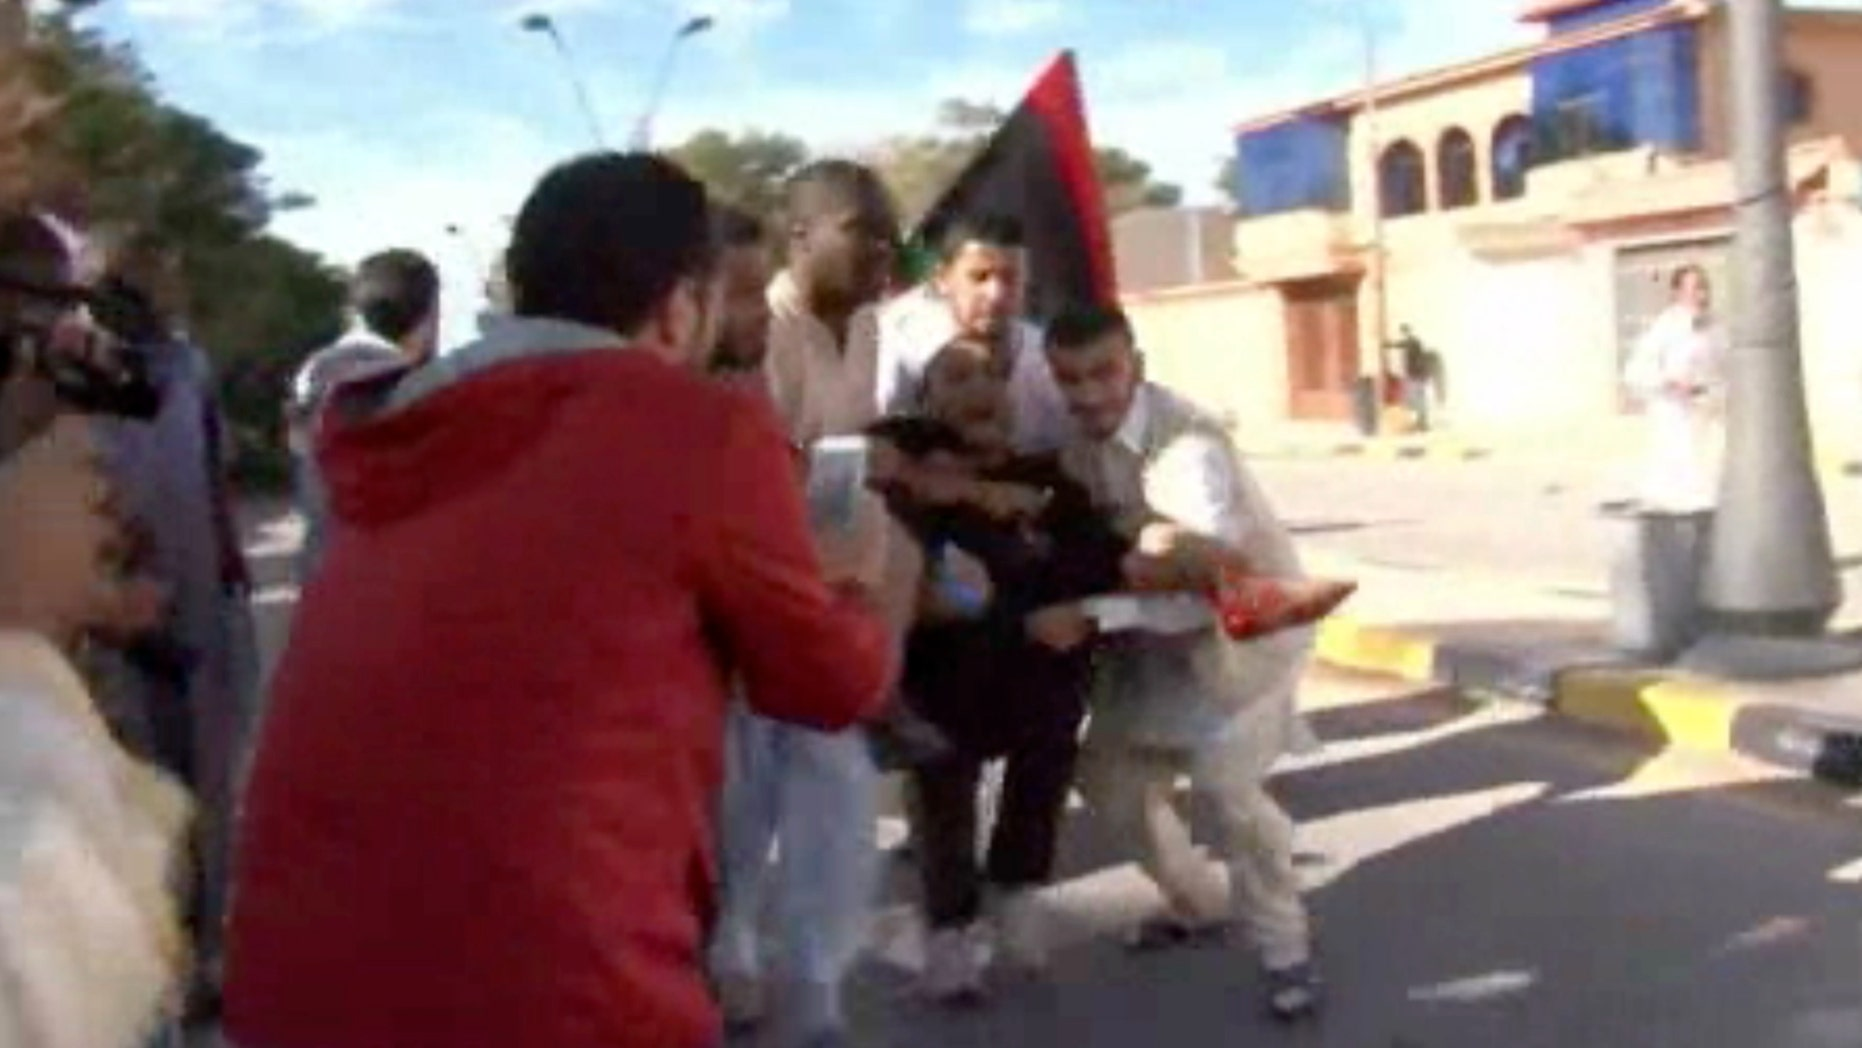 Nov. 15, 2015 - Image made from video shows an injured protester being carried away from the scene in Tripoli, Libya after militiamen attacked peaceful protesters demanding the disbanding of the country's rampant armed groups.